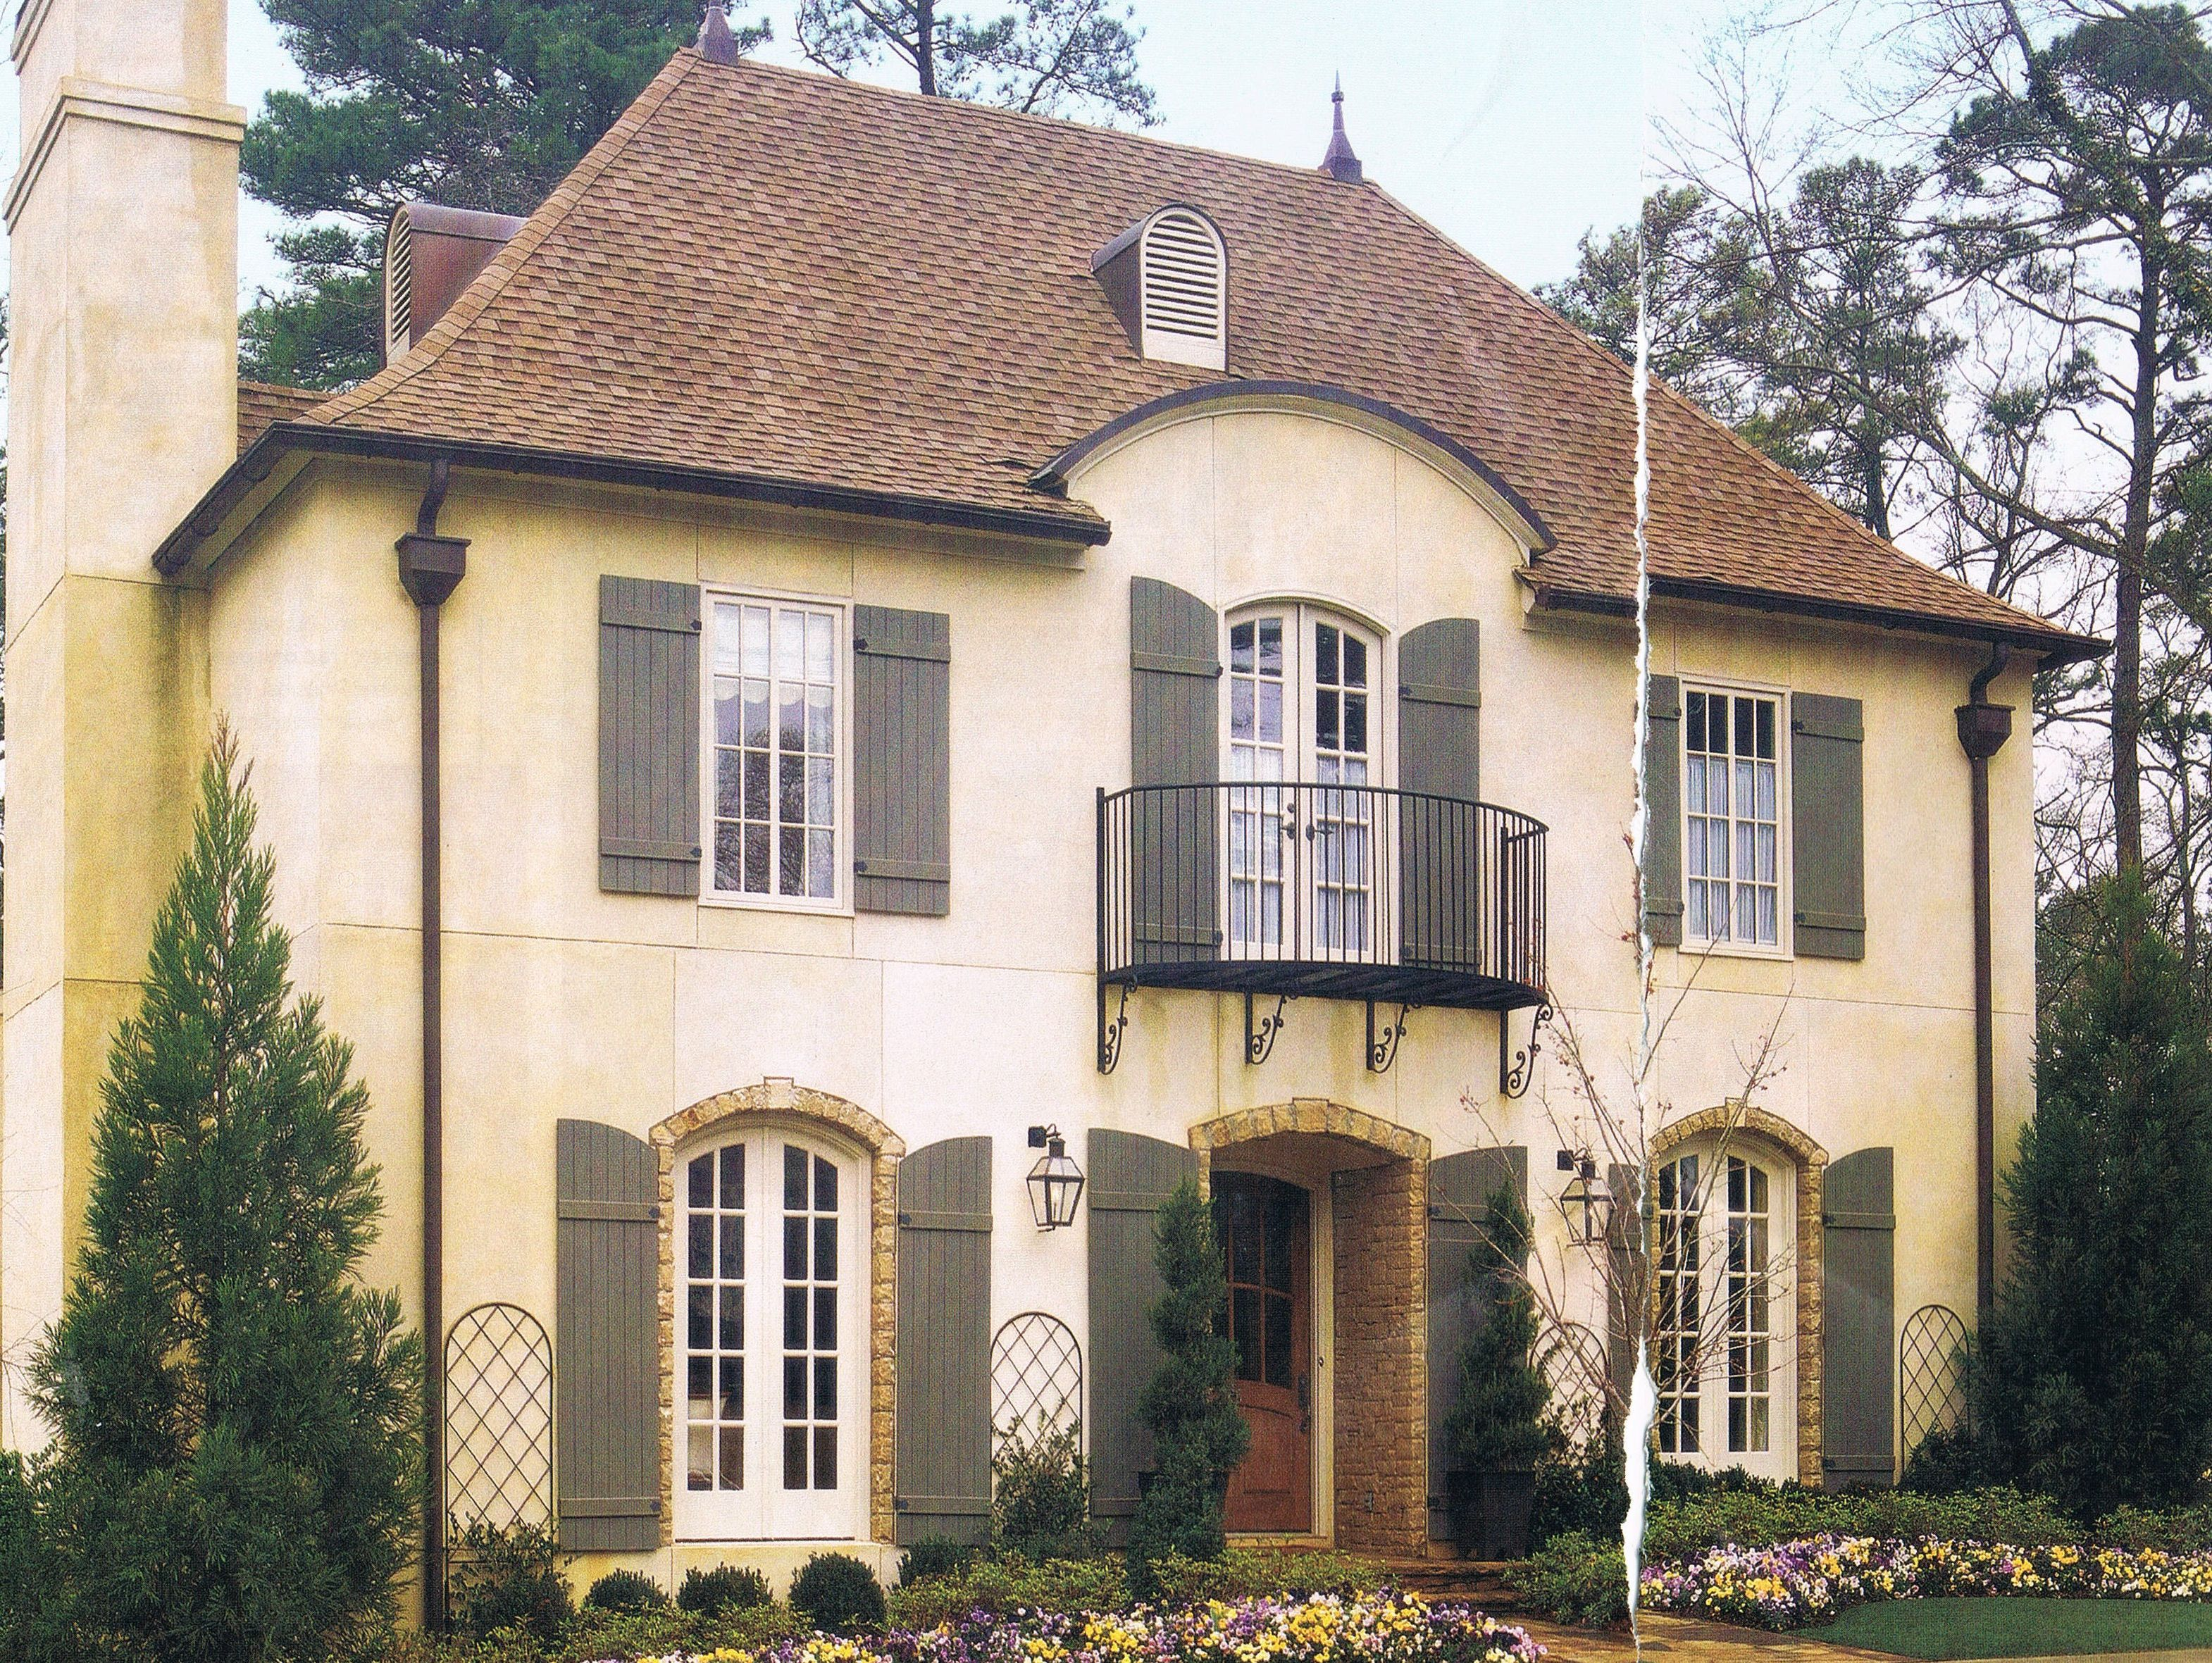 French Provincial Architectural Styles Country Style Homes Architecture